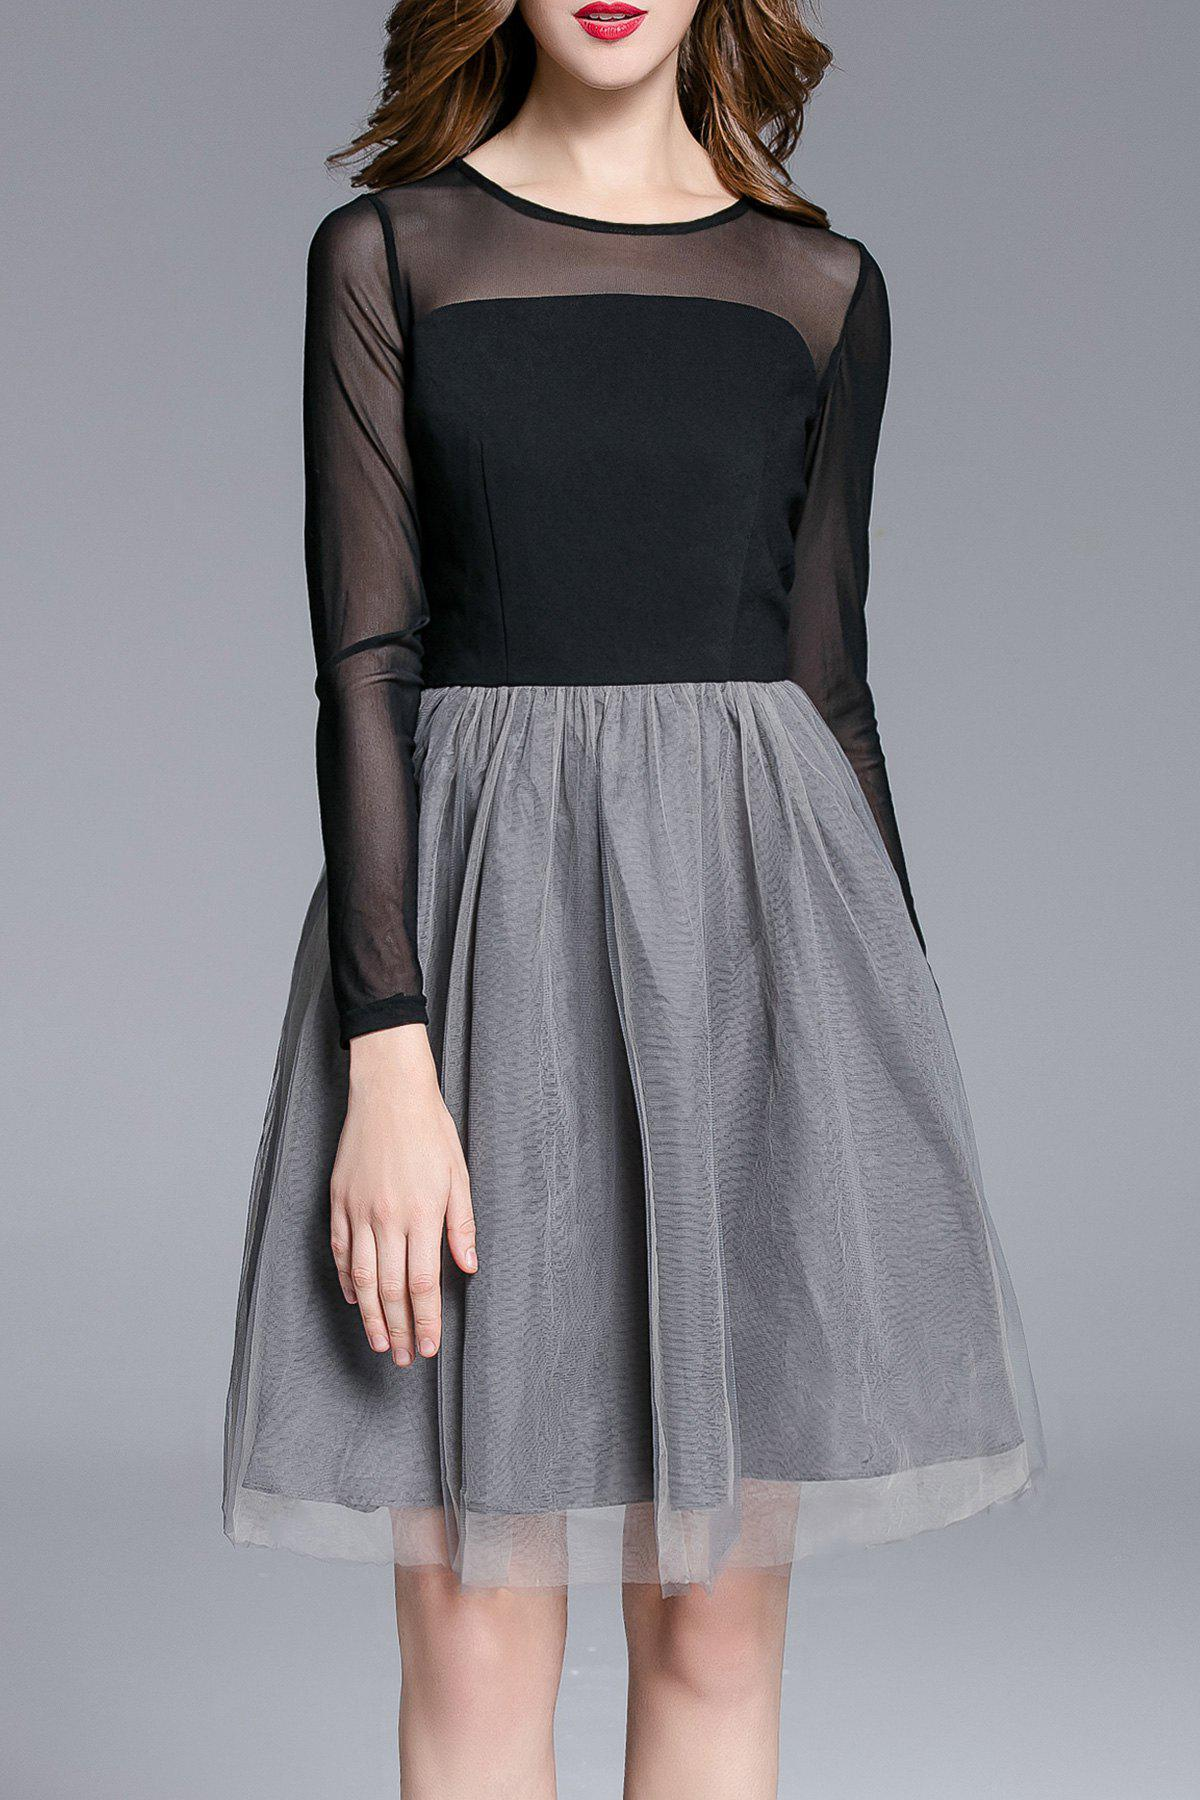 New Sheer Color Block Tulle Dress